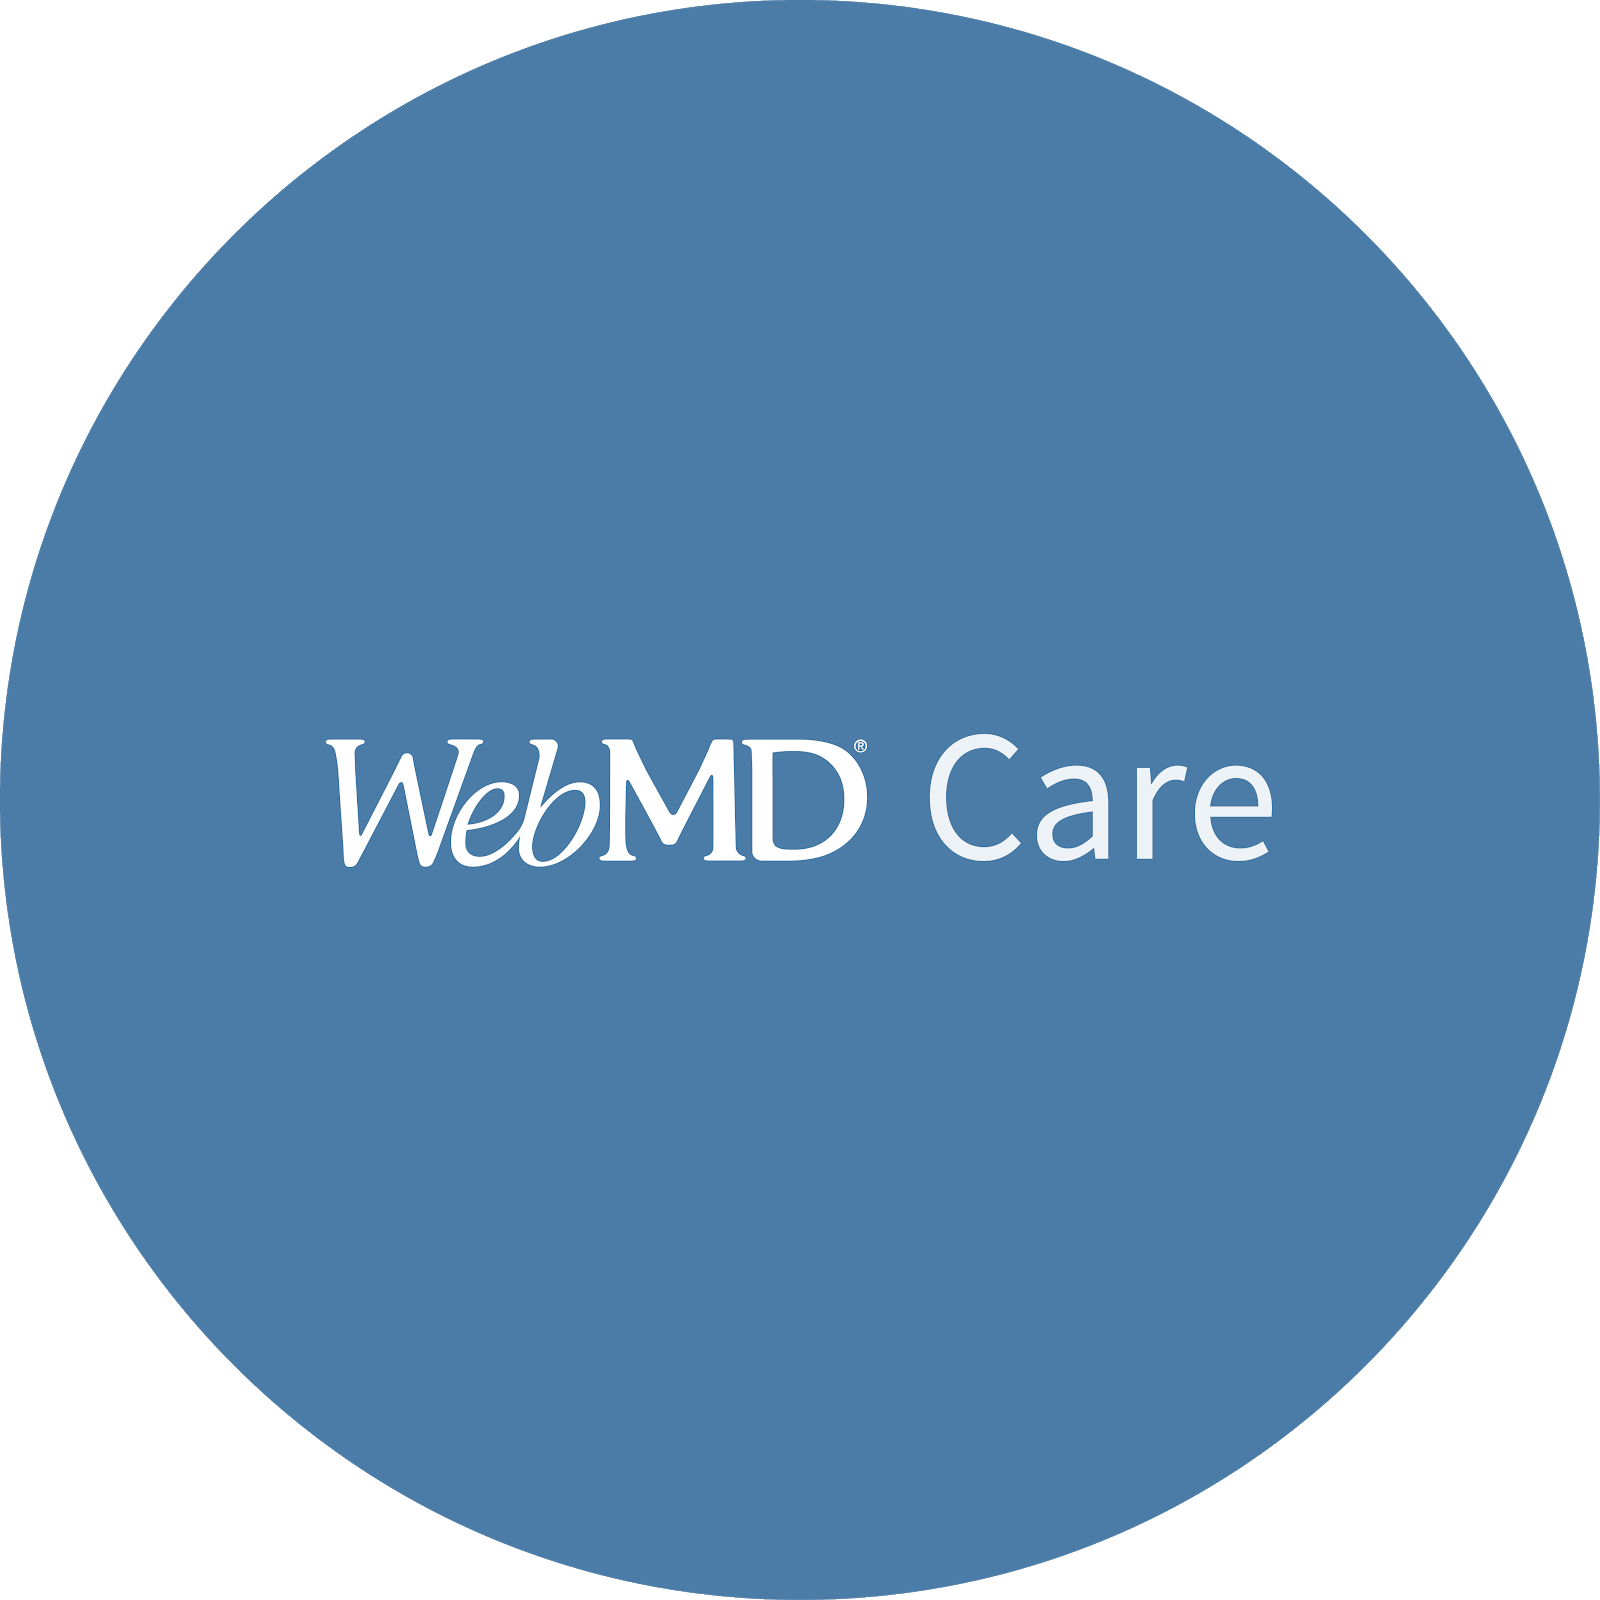 WebMD_Fall_20_Release.png